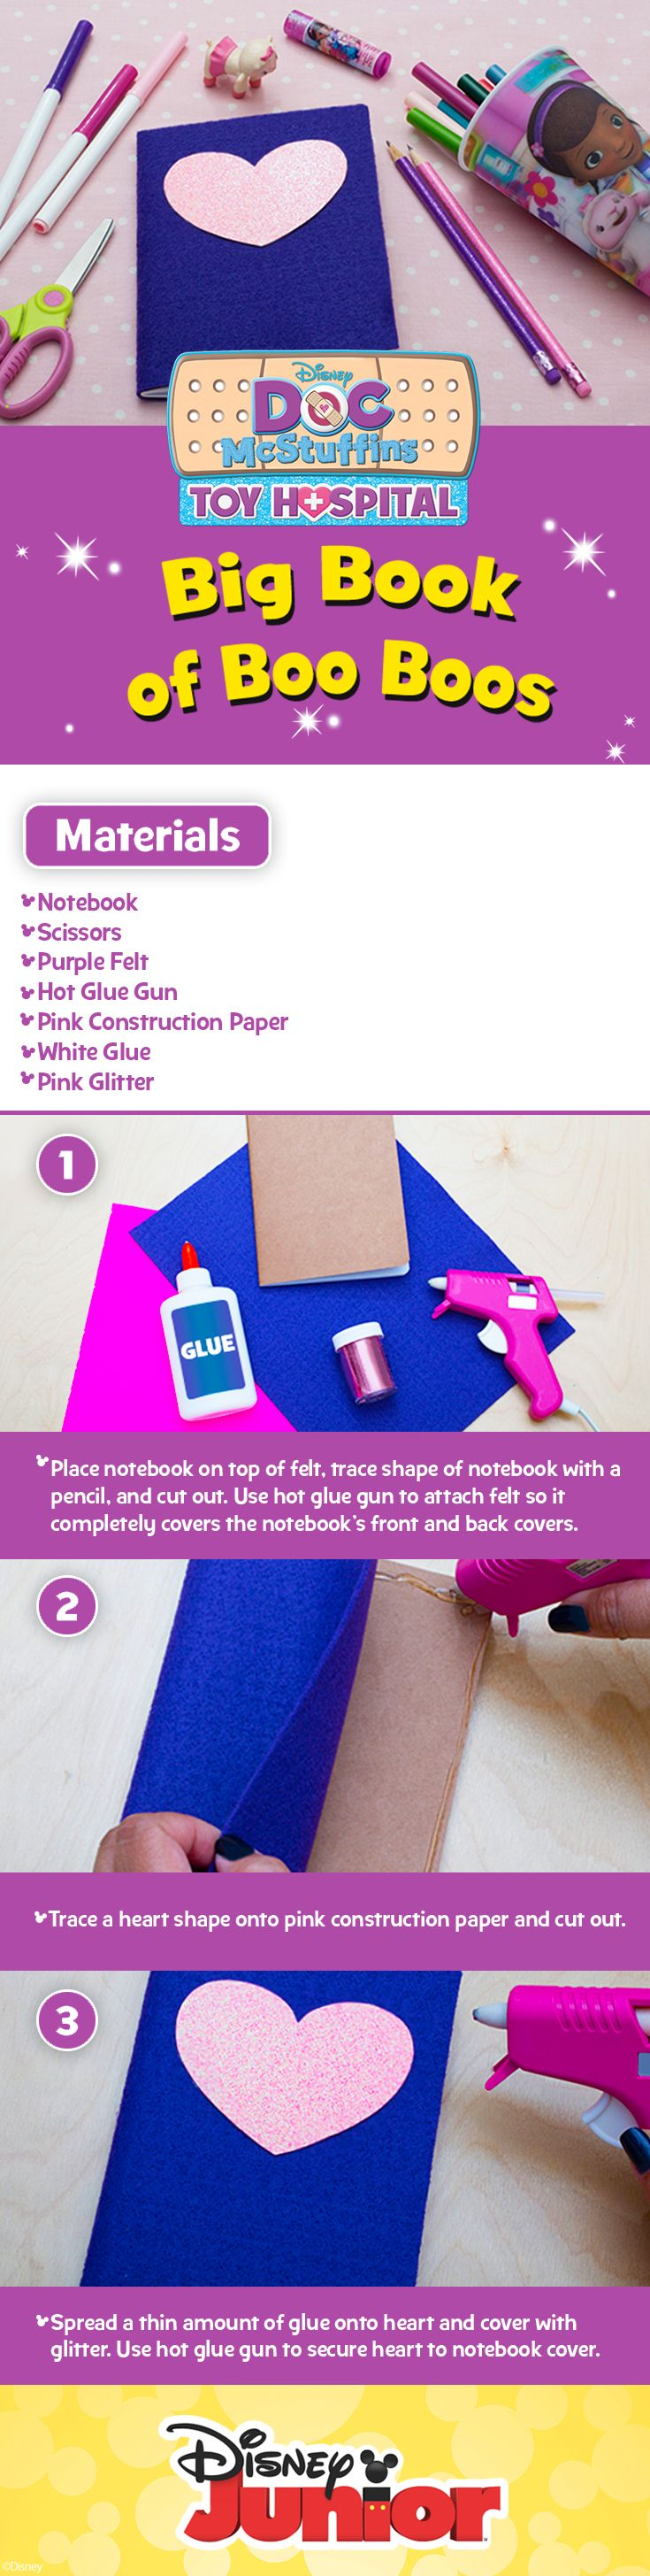 Doc McStuffins DIY Big Book of Boo Boos Craft   Just in time for back to school! Create your version of these two crafts to add a fun twist to your kids' notebooks!